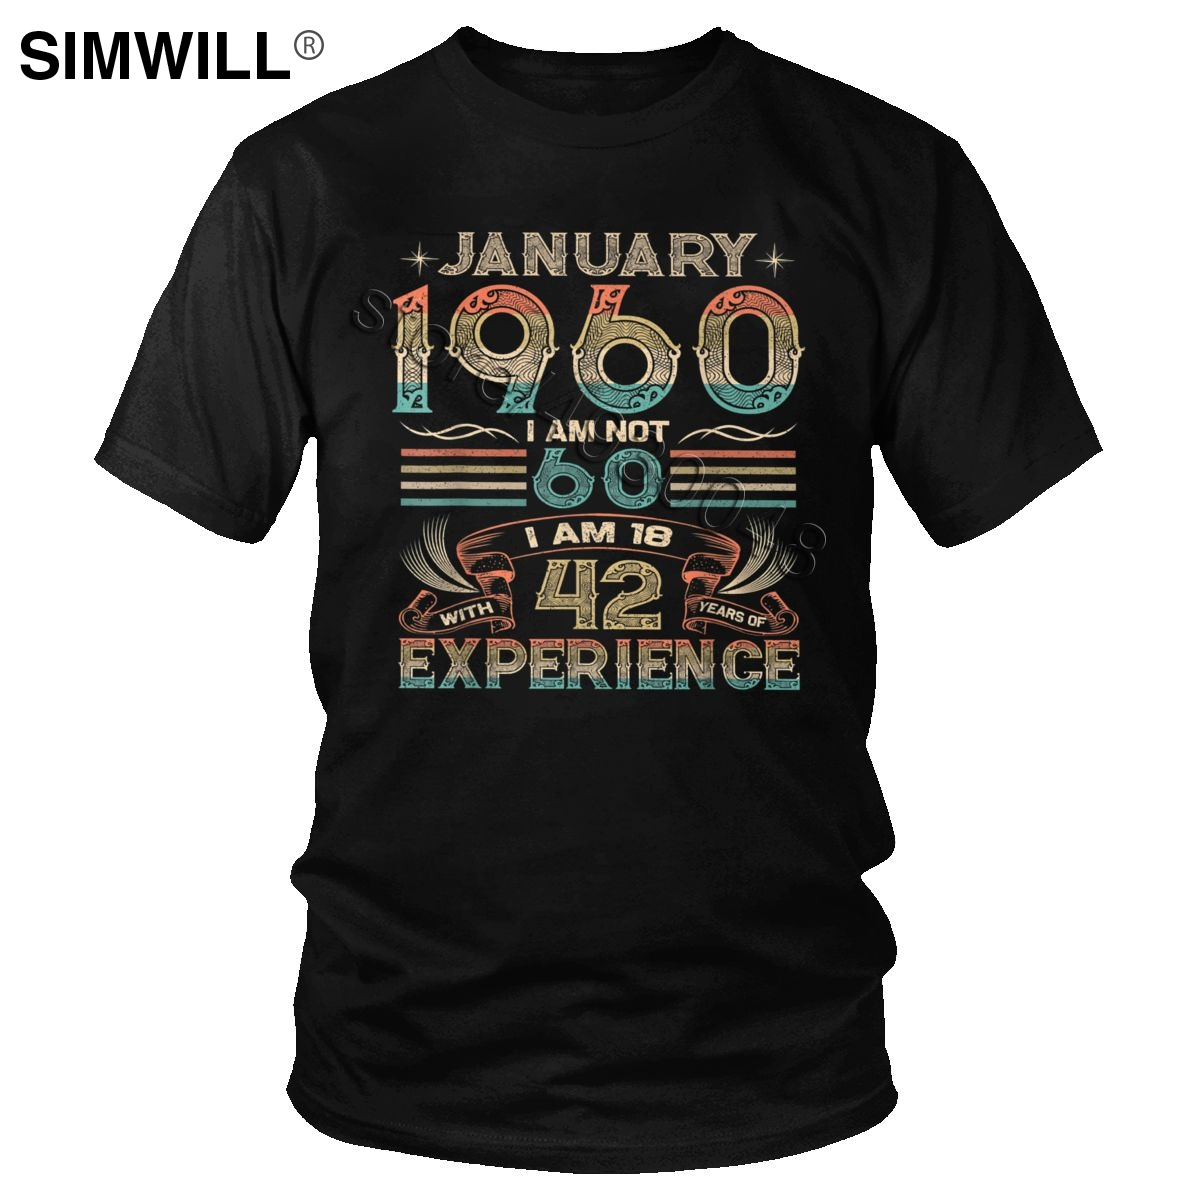 60 Year Old Gift 60th Birthday Gift January 1960 T-Shirt Retro Casual Cotton Tshirt Men Short Sleeve Legends Are Born In 60s Tee